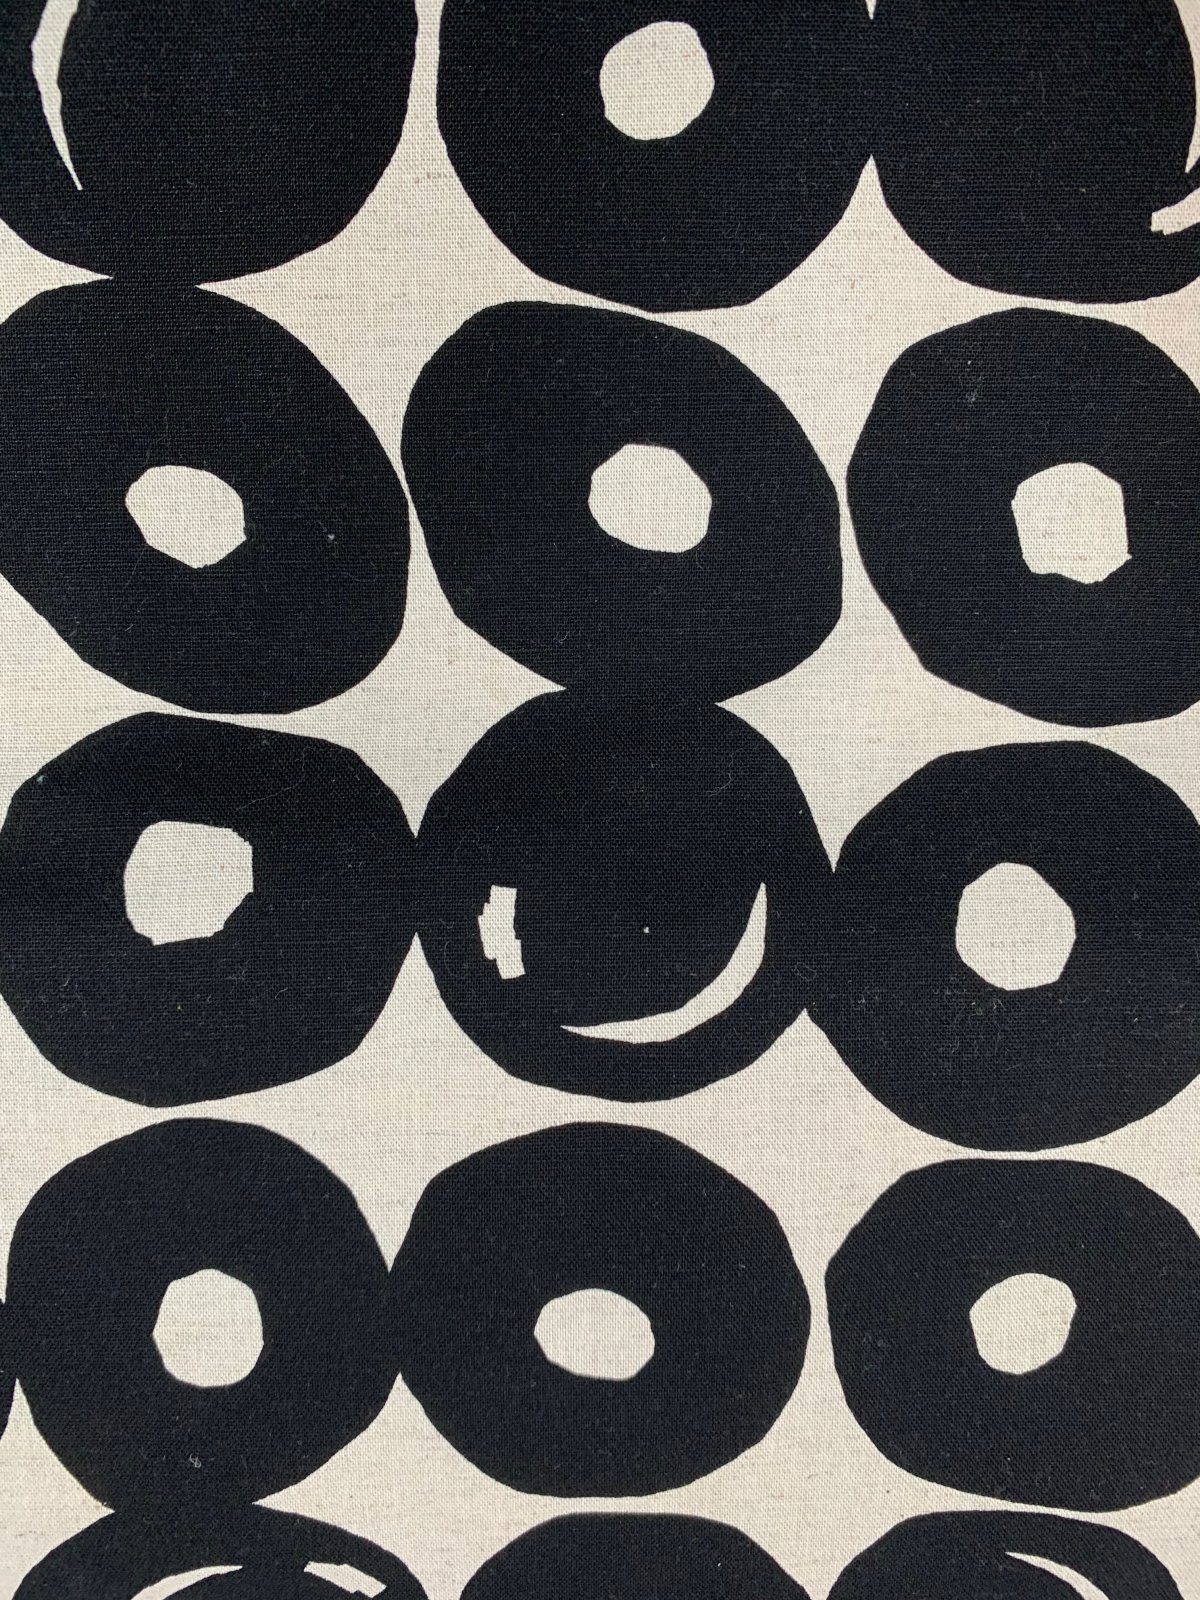 Cosmo canvas large donut circles black/white